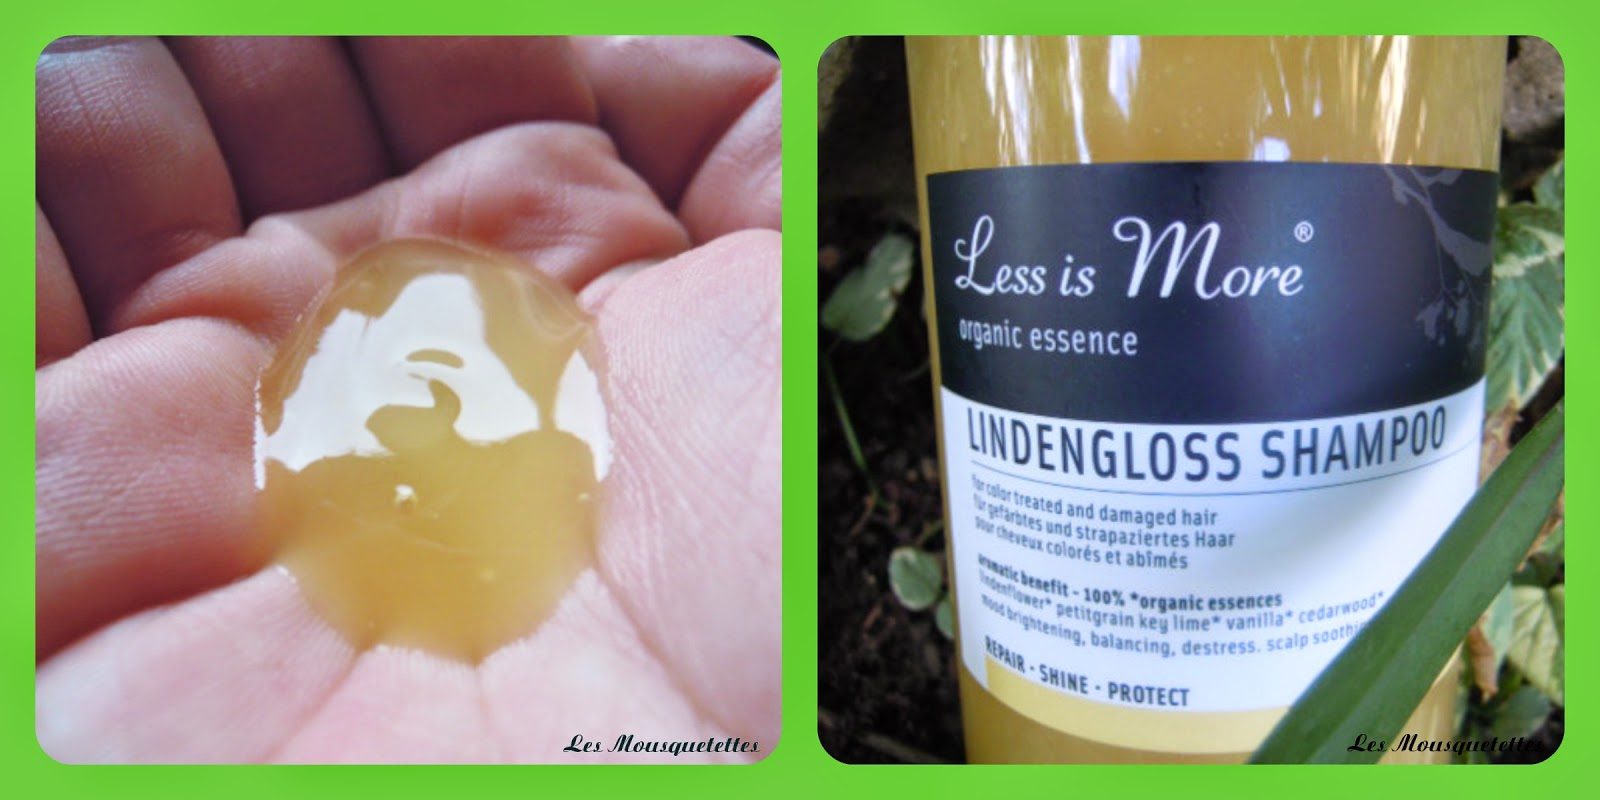 Shampoing Lindengloss Less is More - Les Mousquetettes©